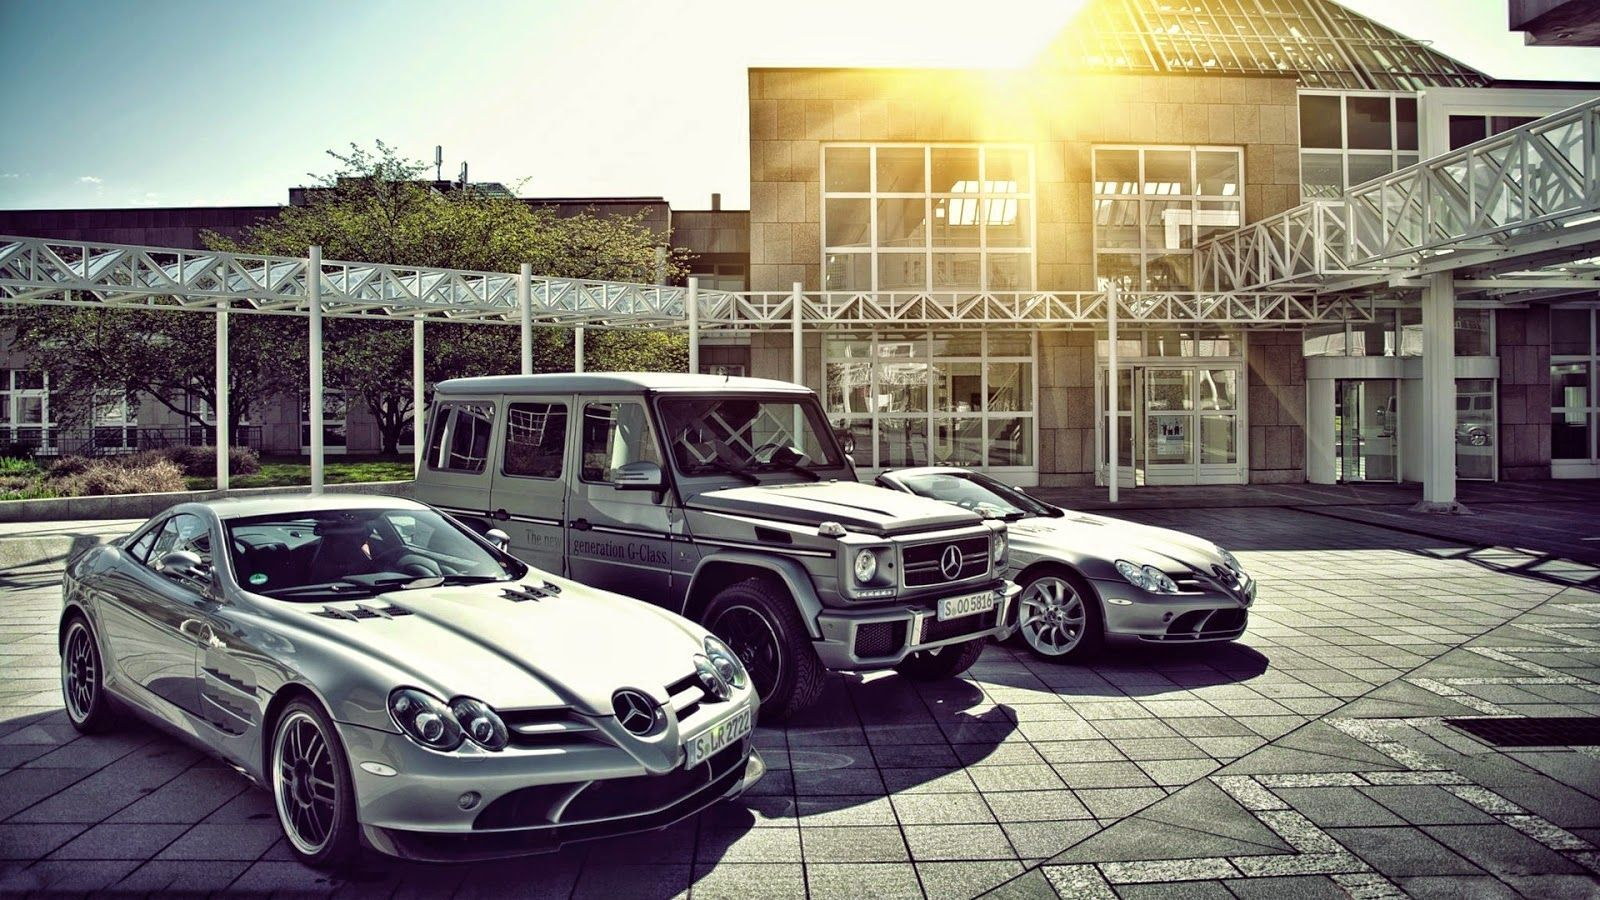 Millionaire Lifestyle Car Backgrounds Mercedes Cars Wallpapers For Free Download About